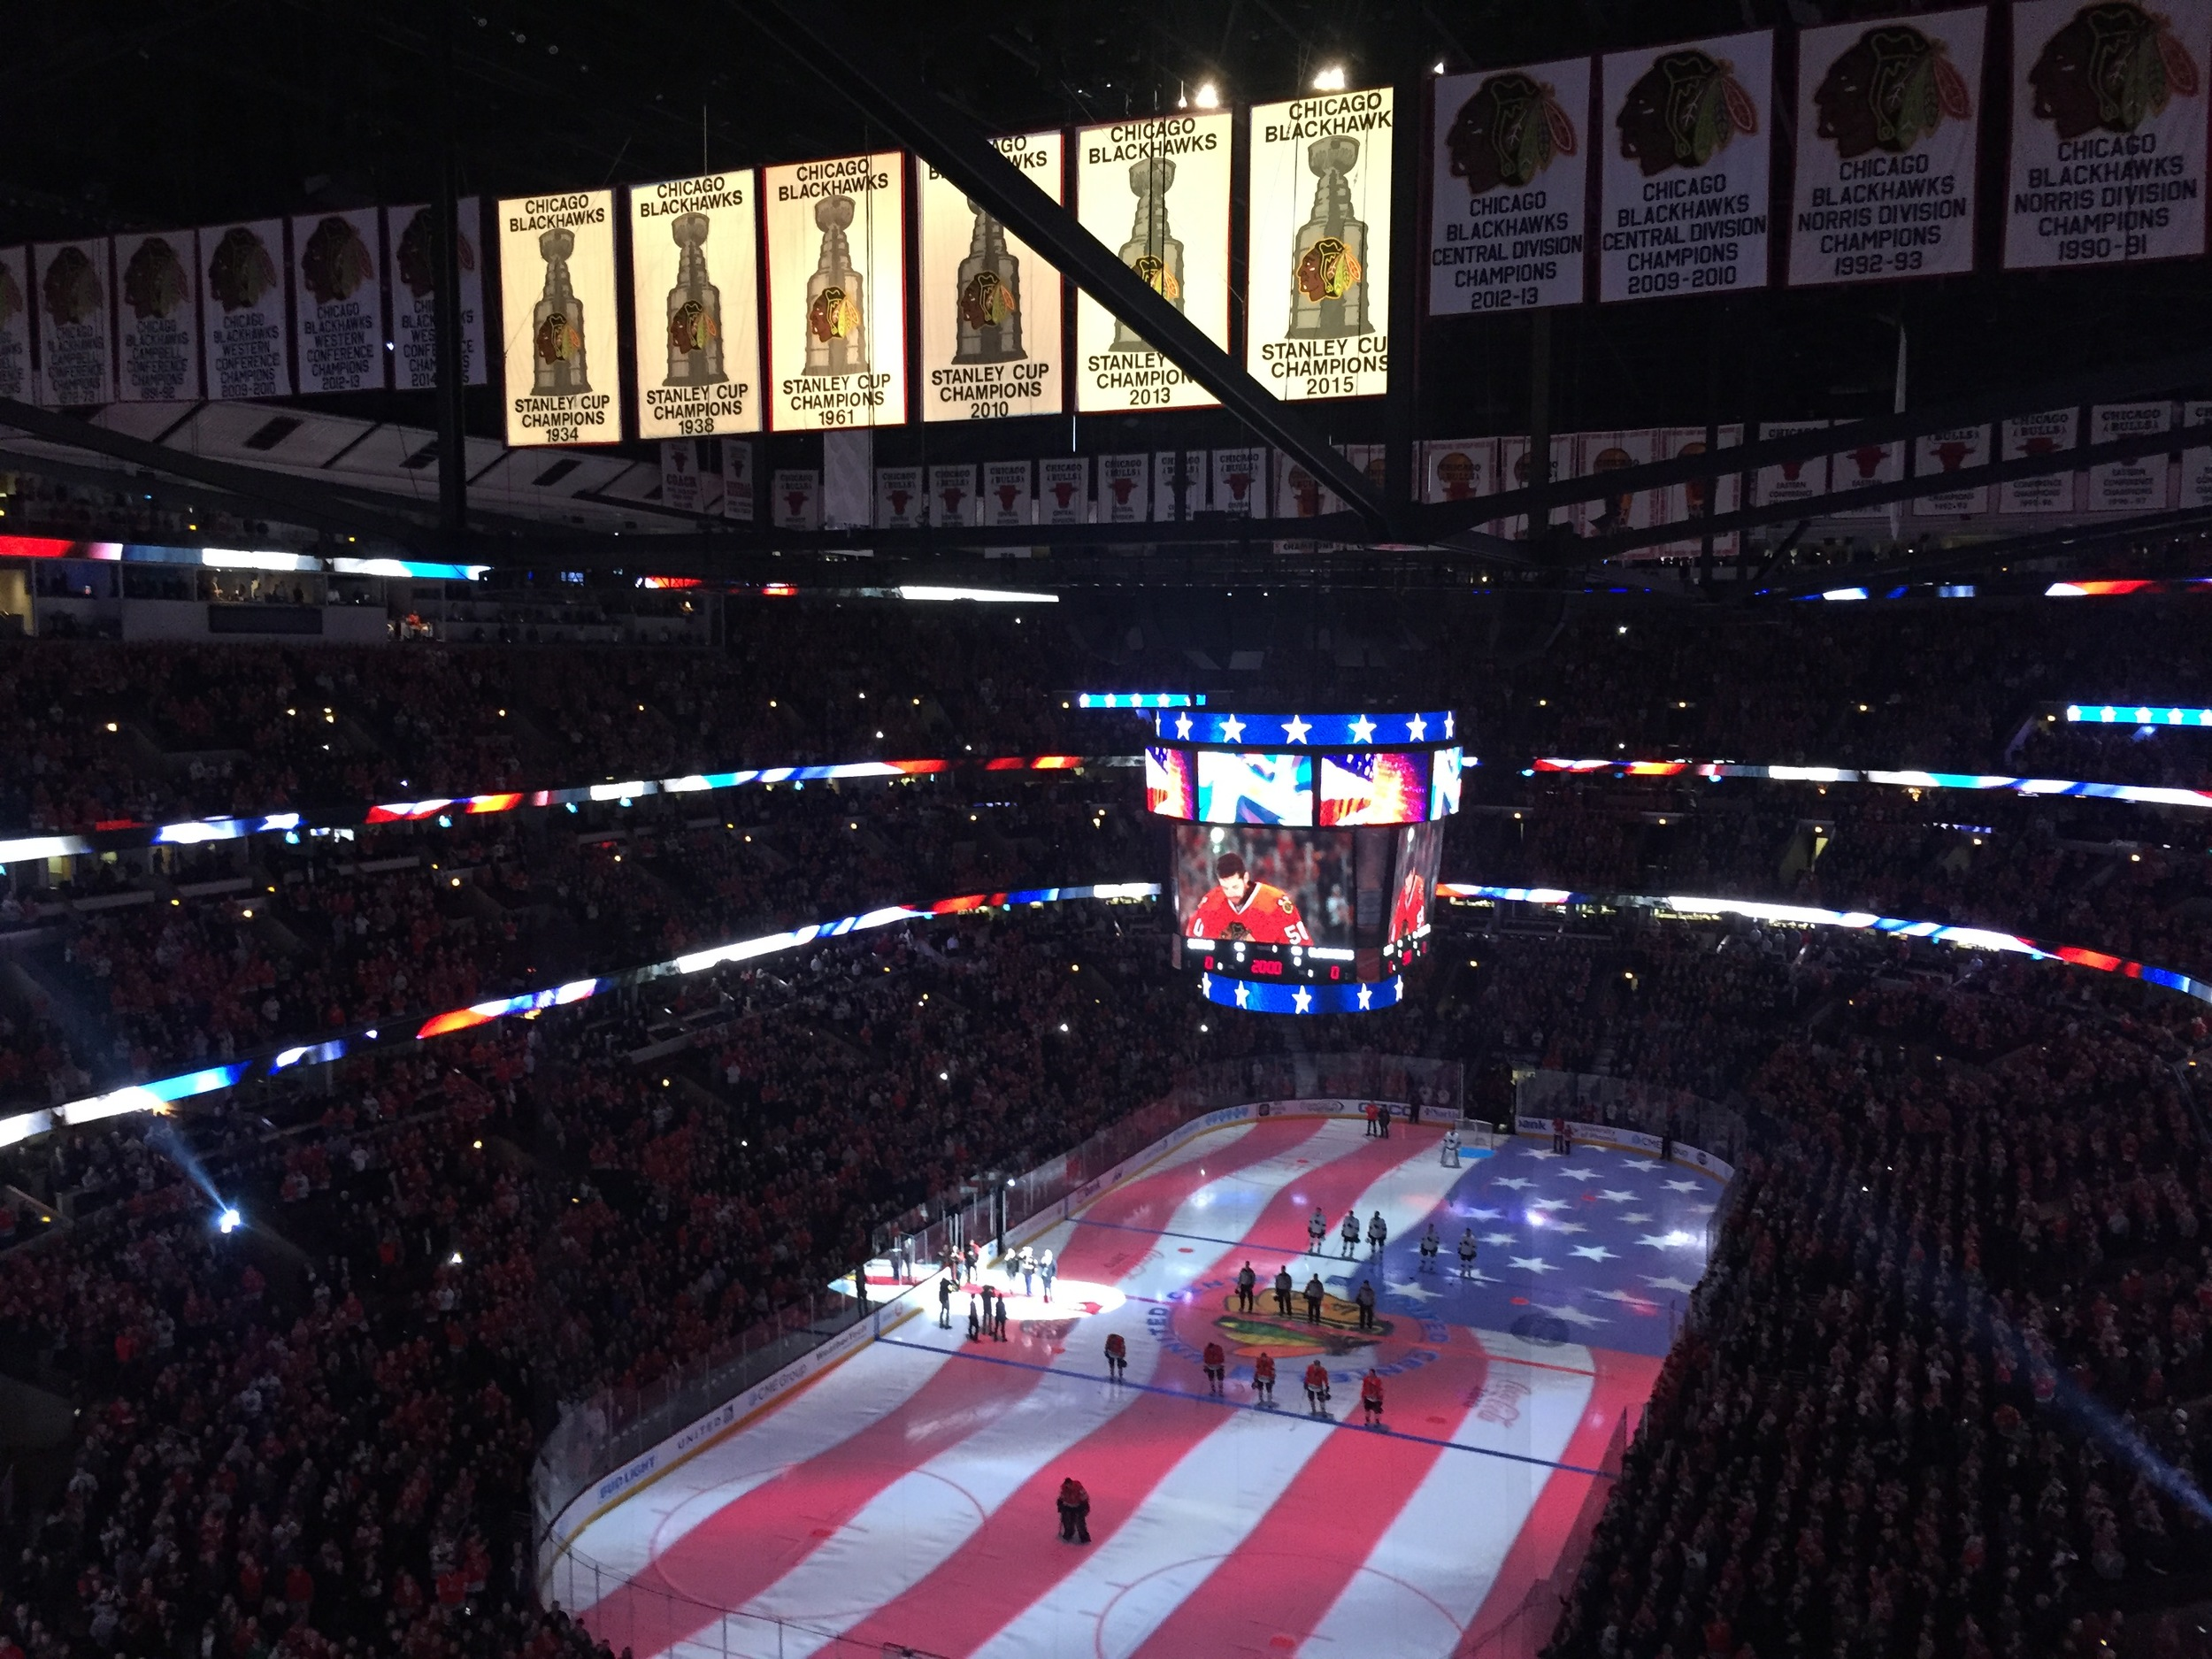 Red, white and blue at a Blackhawks game.